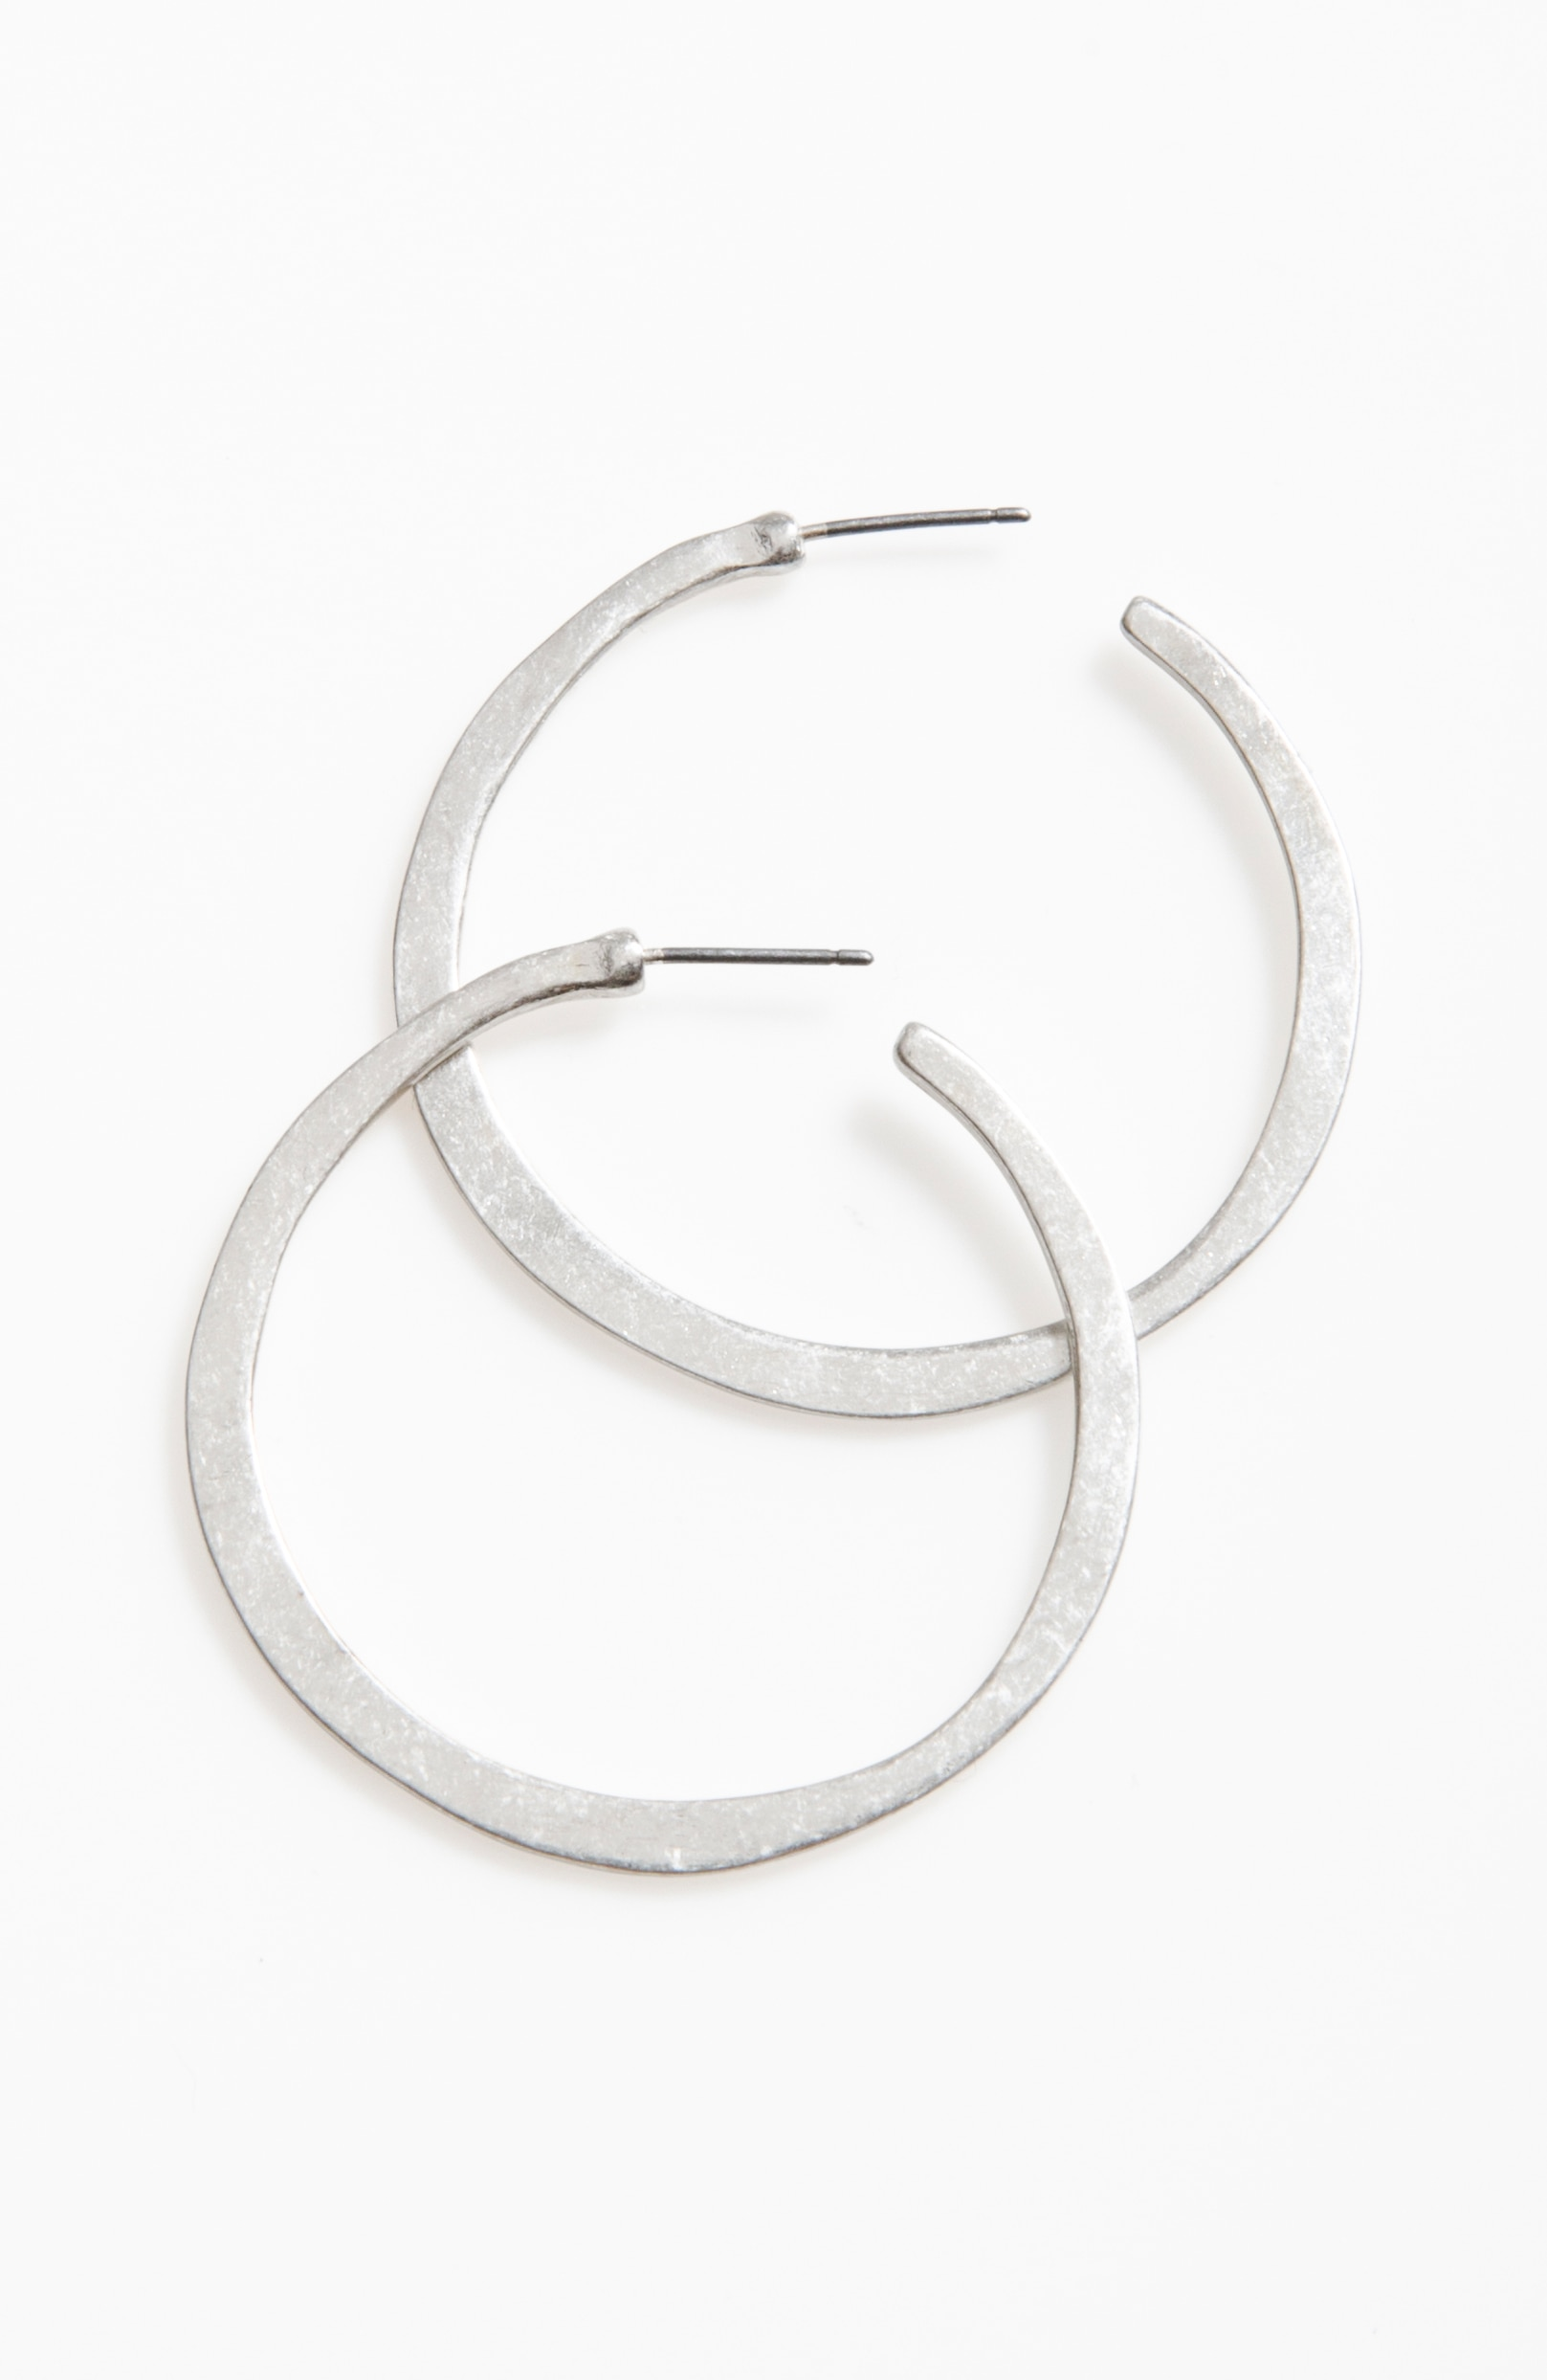 artisanal hoop earrings